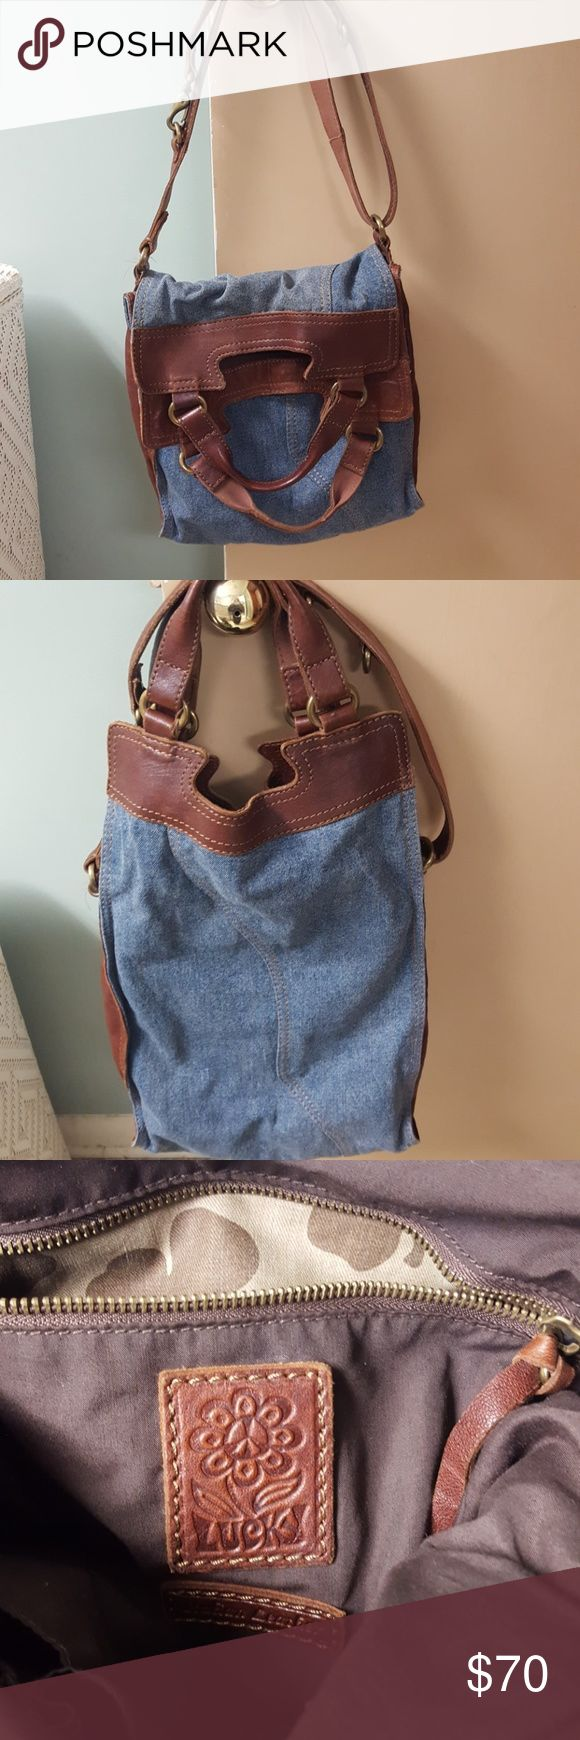 Abbey Road crossbody Lucky purse Abbey Road style lucky brand purse  Denim and leather  Adjustable strap so it can be crossbody or shoulder bag New condition Lucky Brand Bags Crossbody Bags